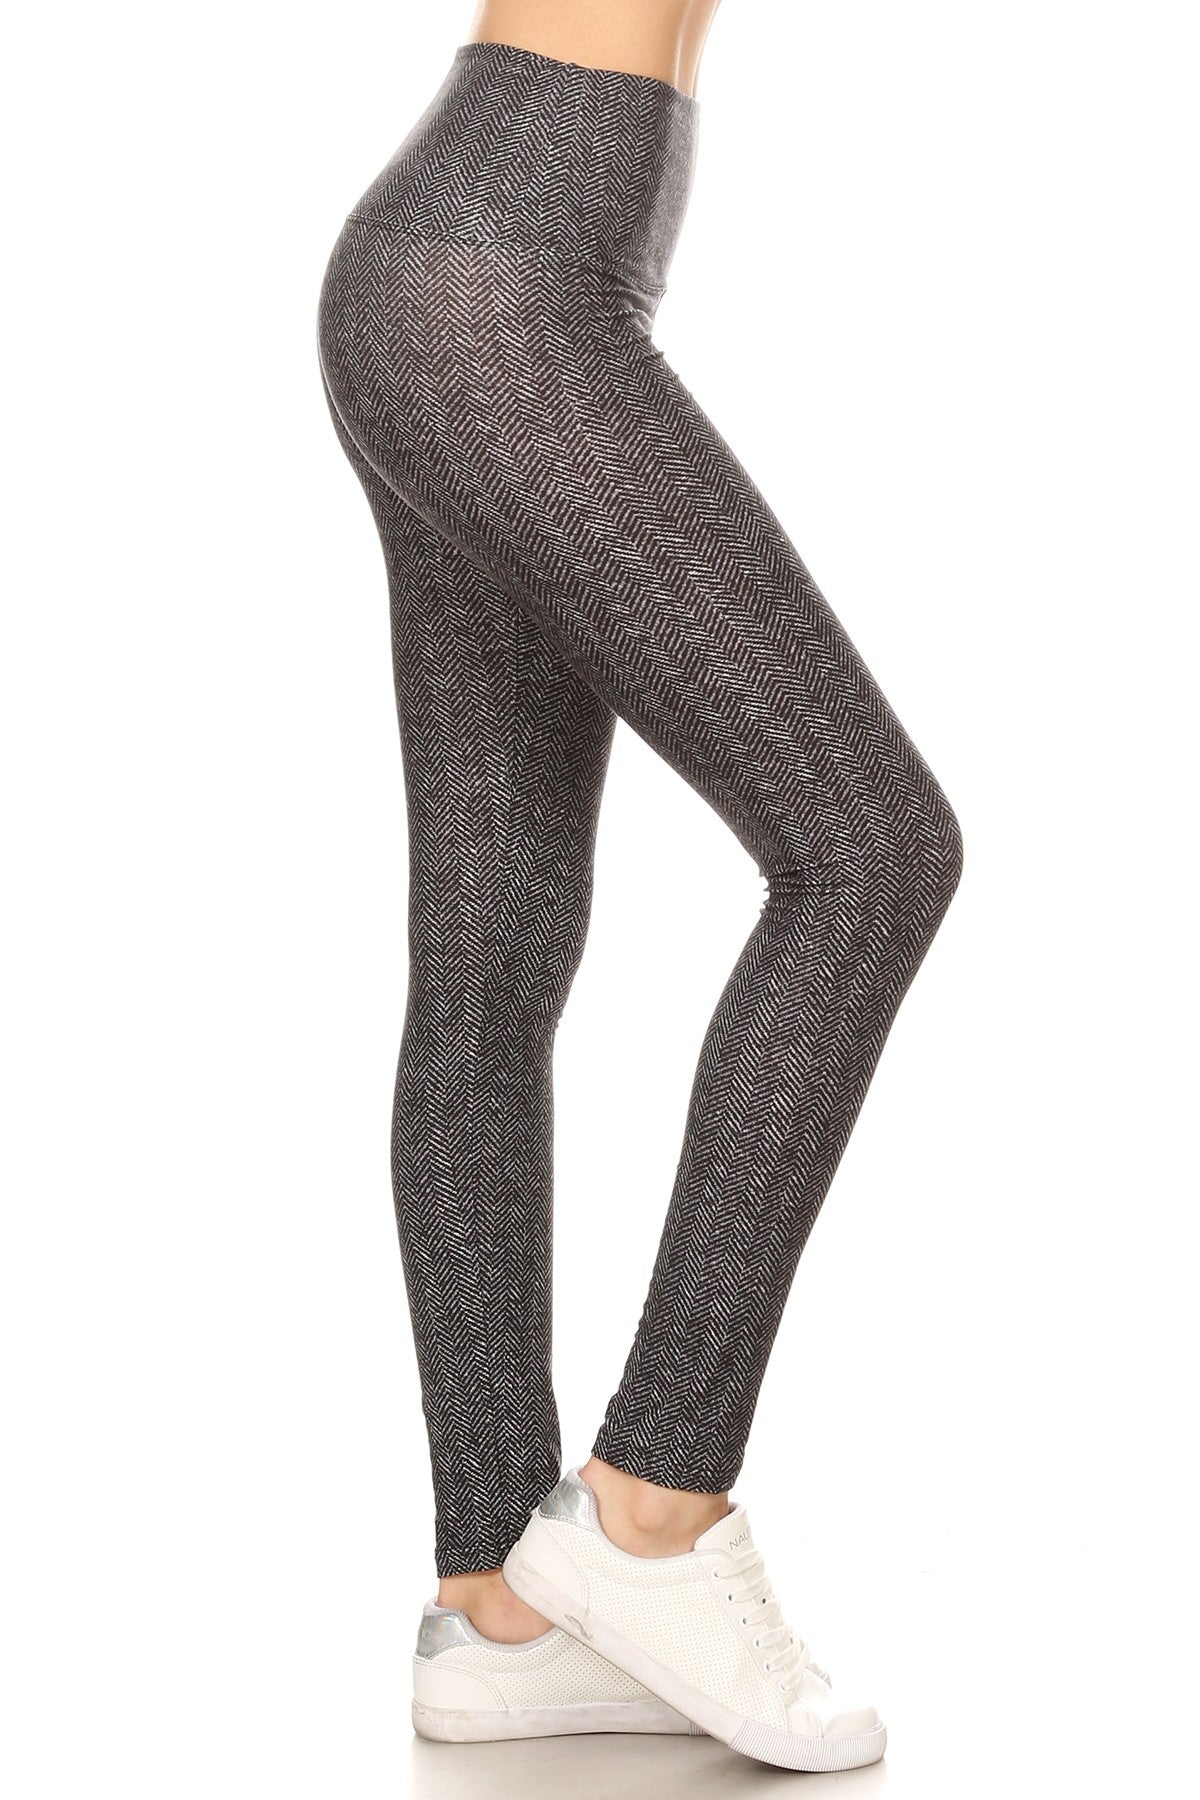 """The Chevron""Yoga Style Legging"